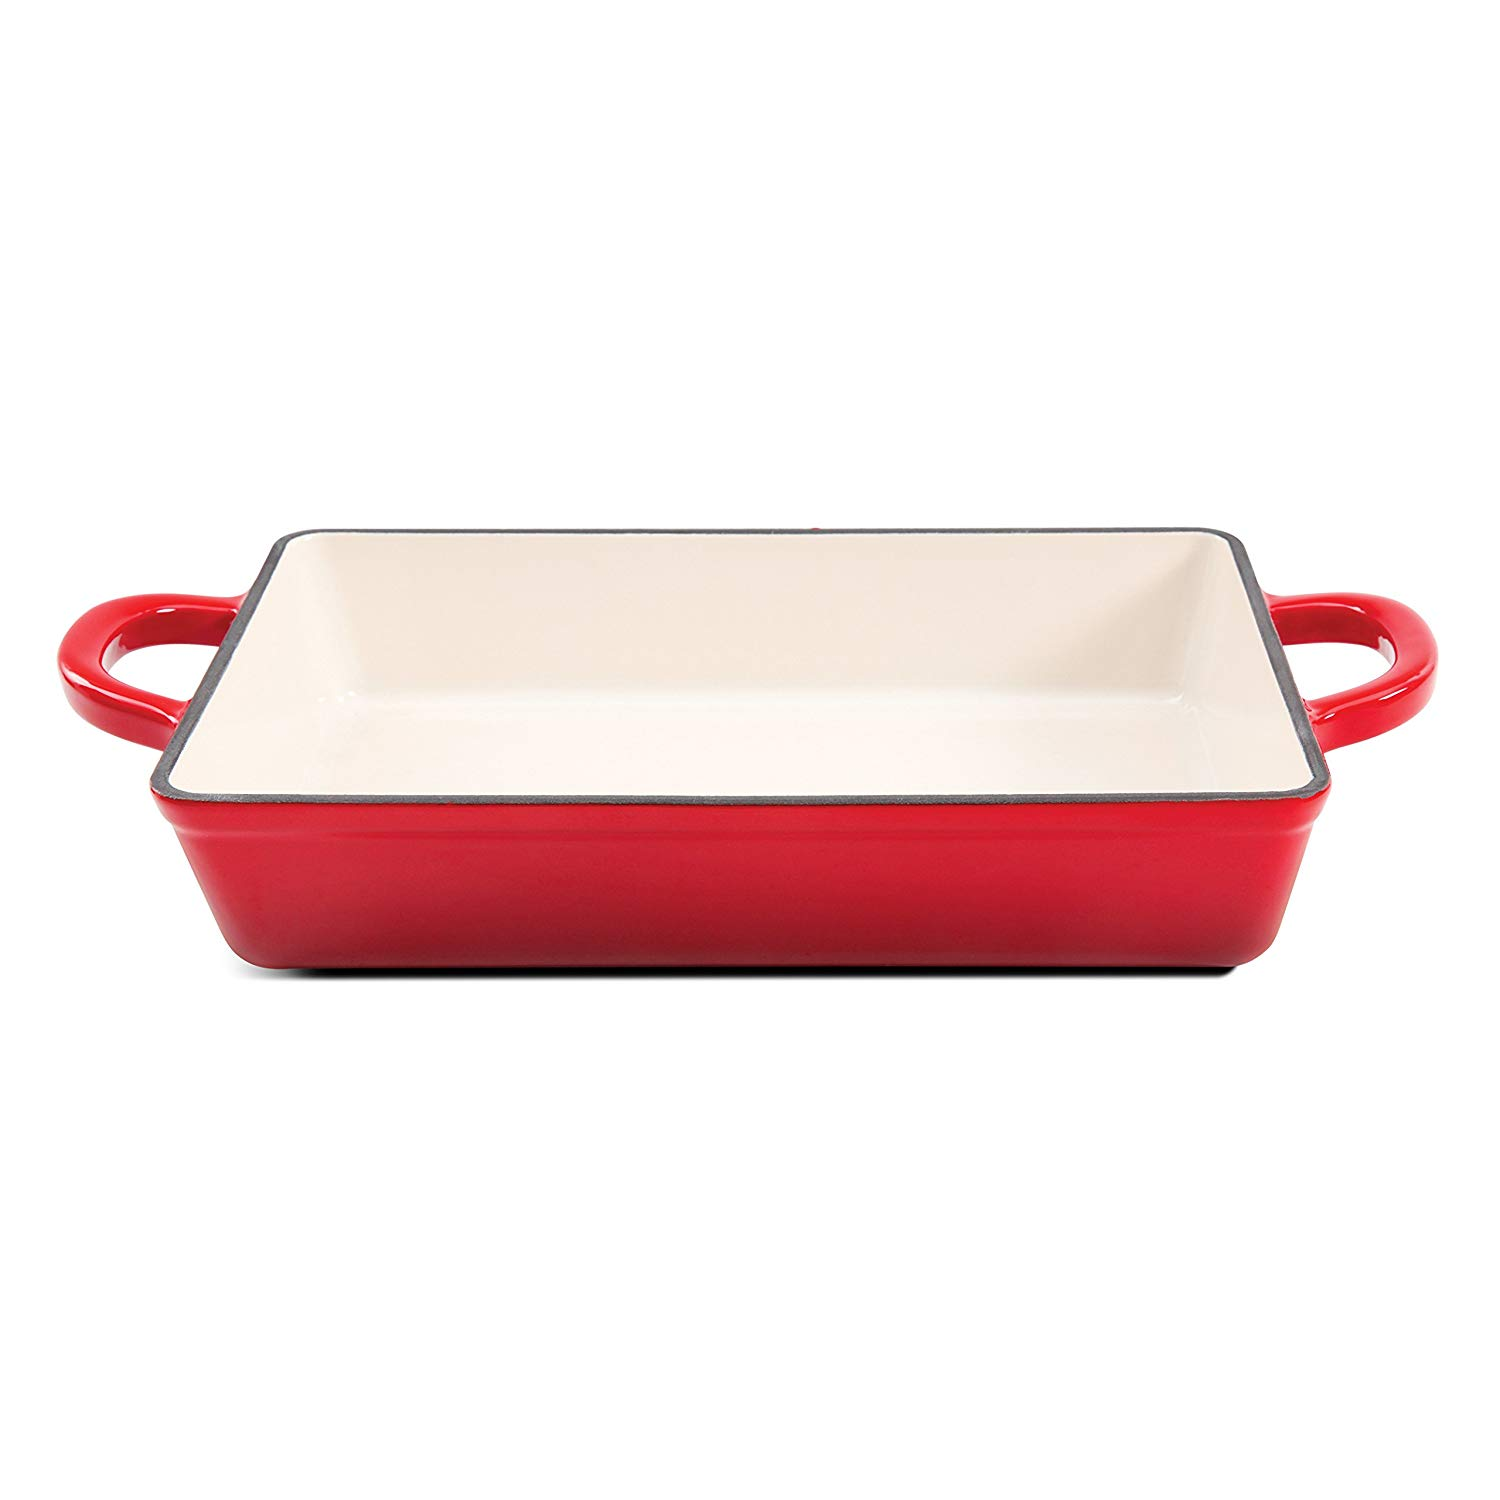 Crock pot enameled cast iron lasagna pan